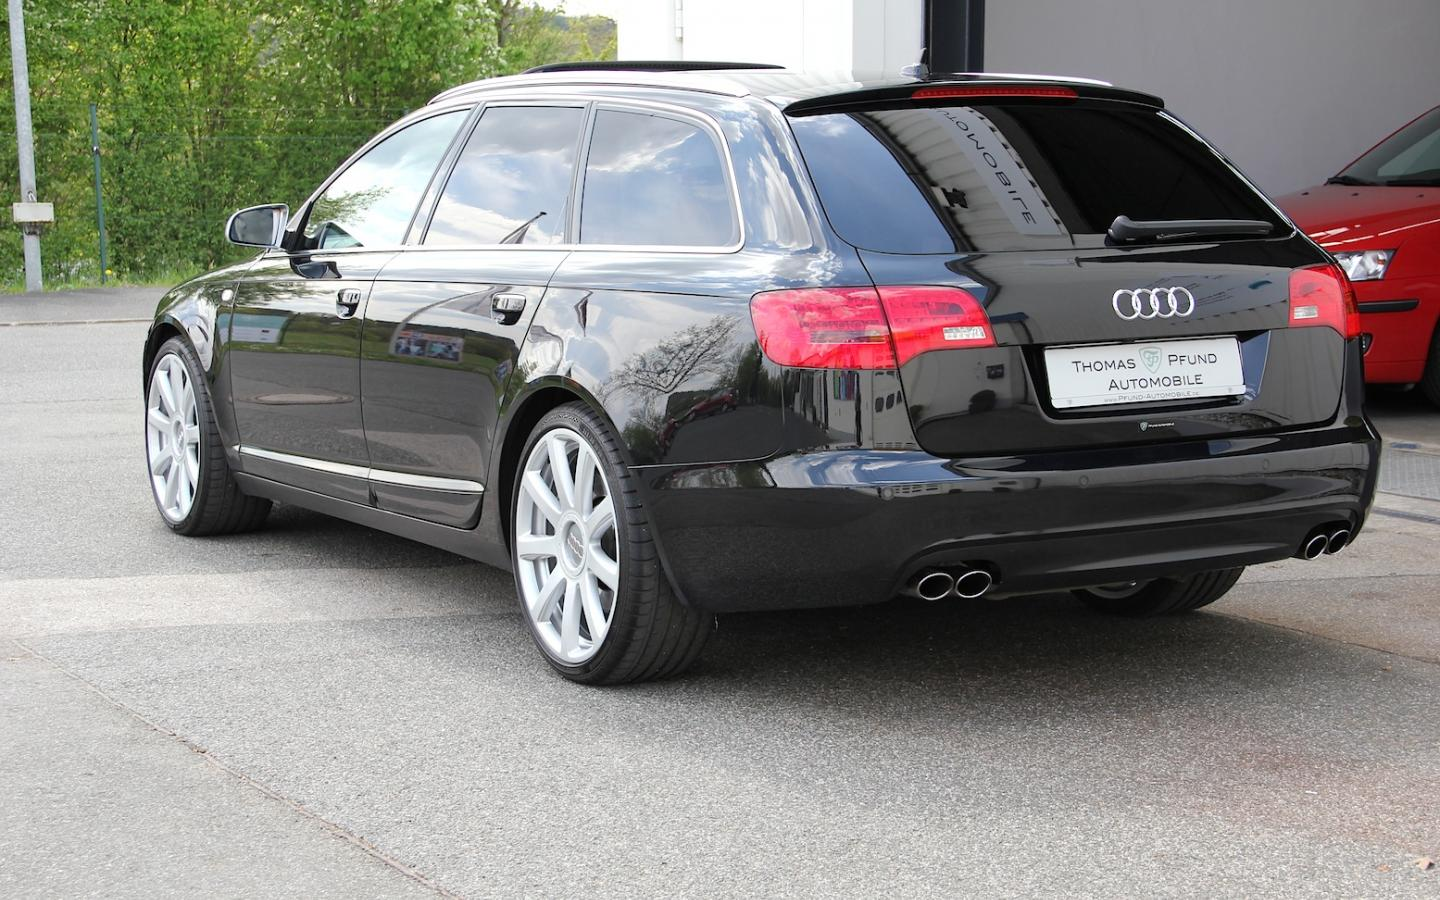 audi s6 5 2 v10 avant acc bose 20 zoll motor neu thomas pfund automobile. Black Bedroom Furniture Sets. Home Design Ideas